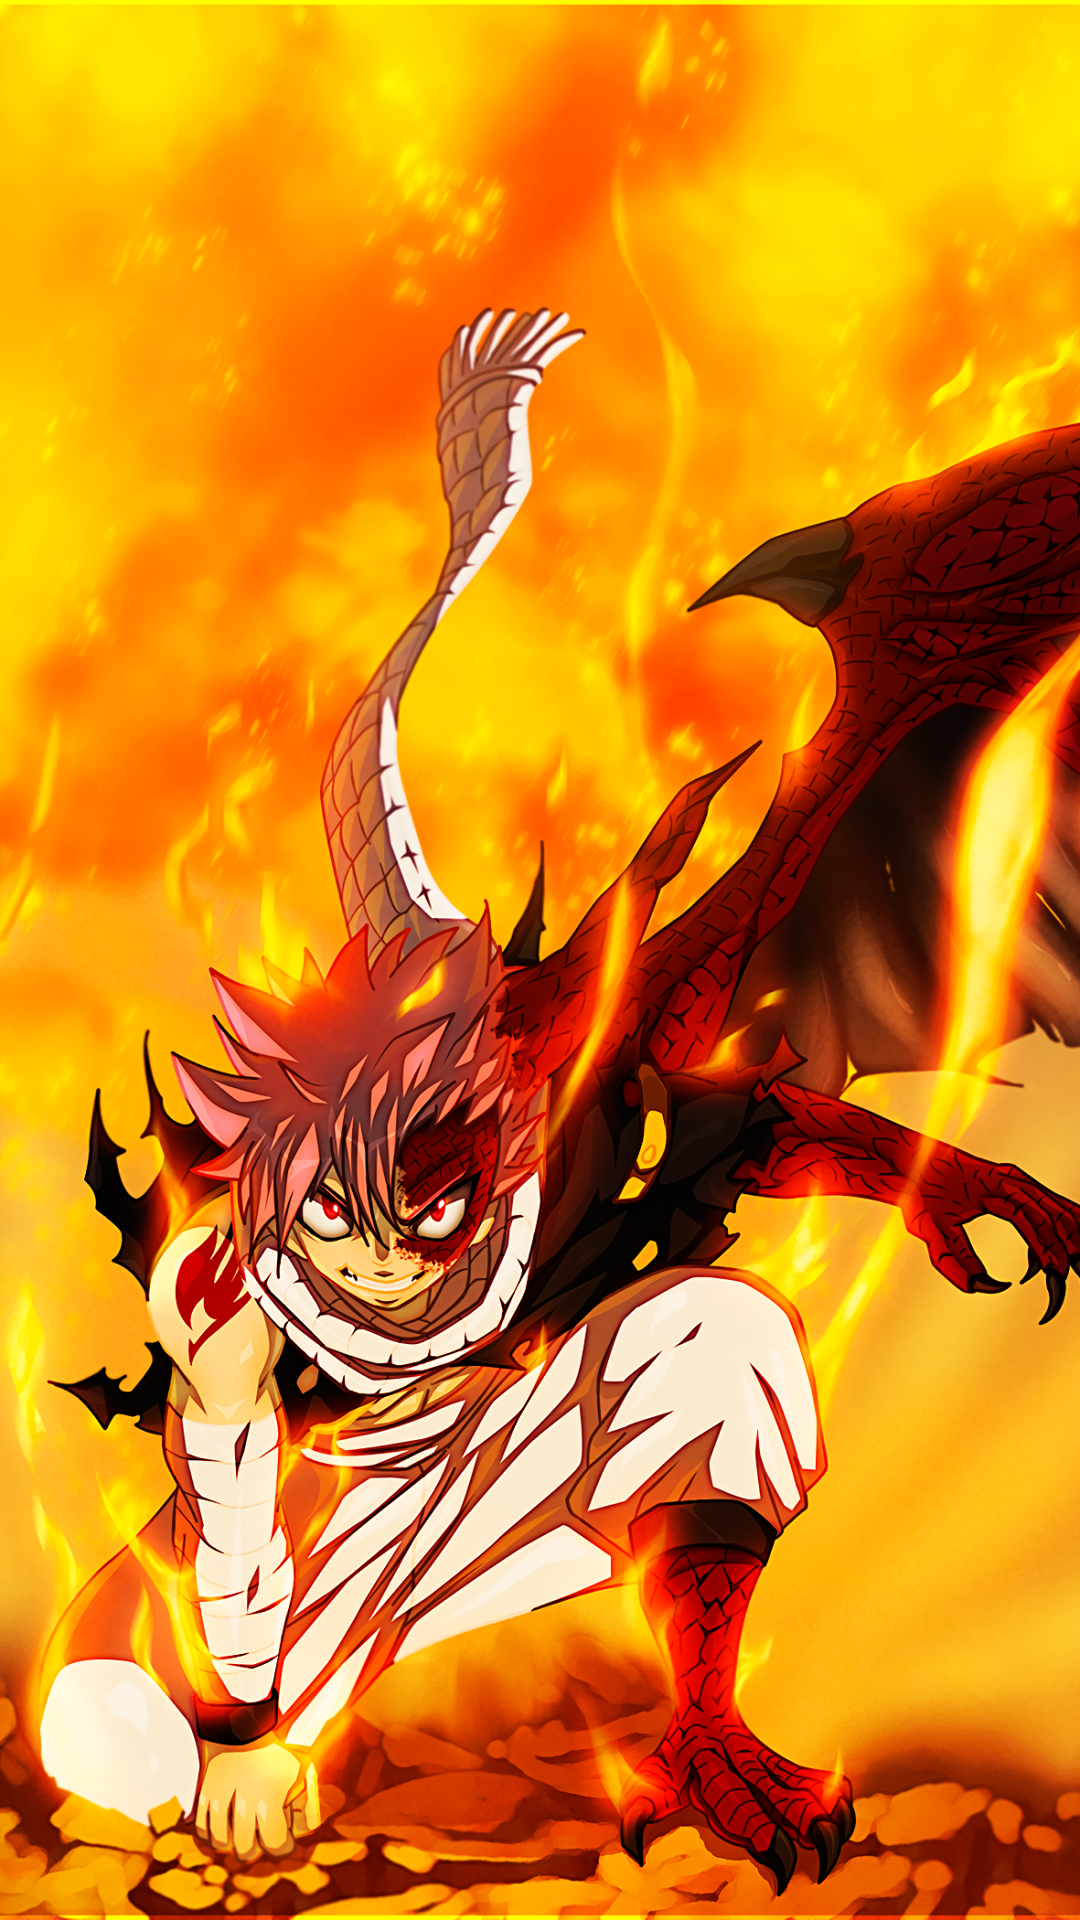 Pin By Devilqueen On Fairy Tail Natsu Fairy Tail Fairy Tail Dragon Force Fairy Tail Anime